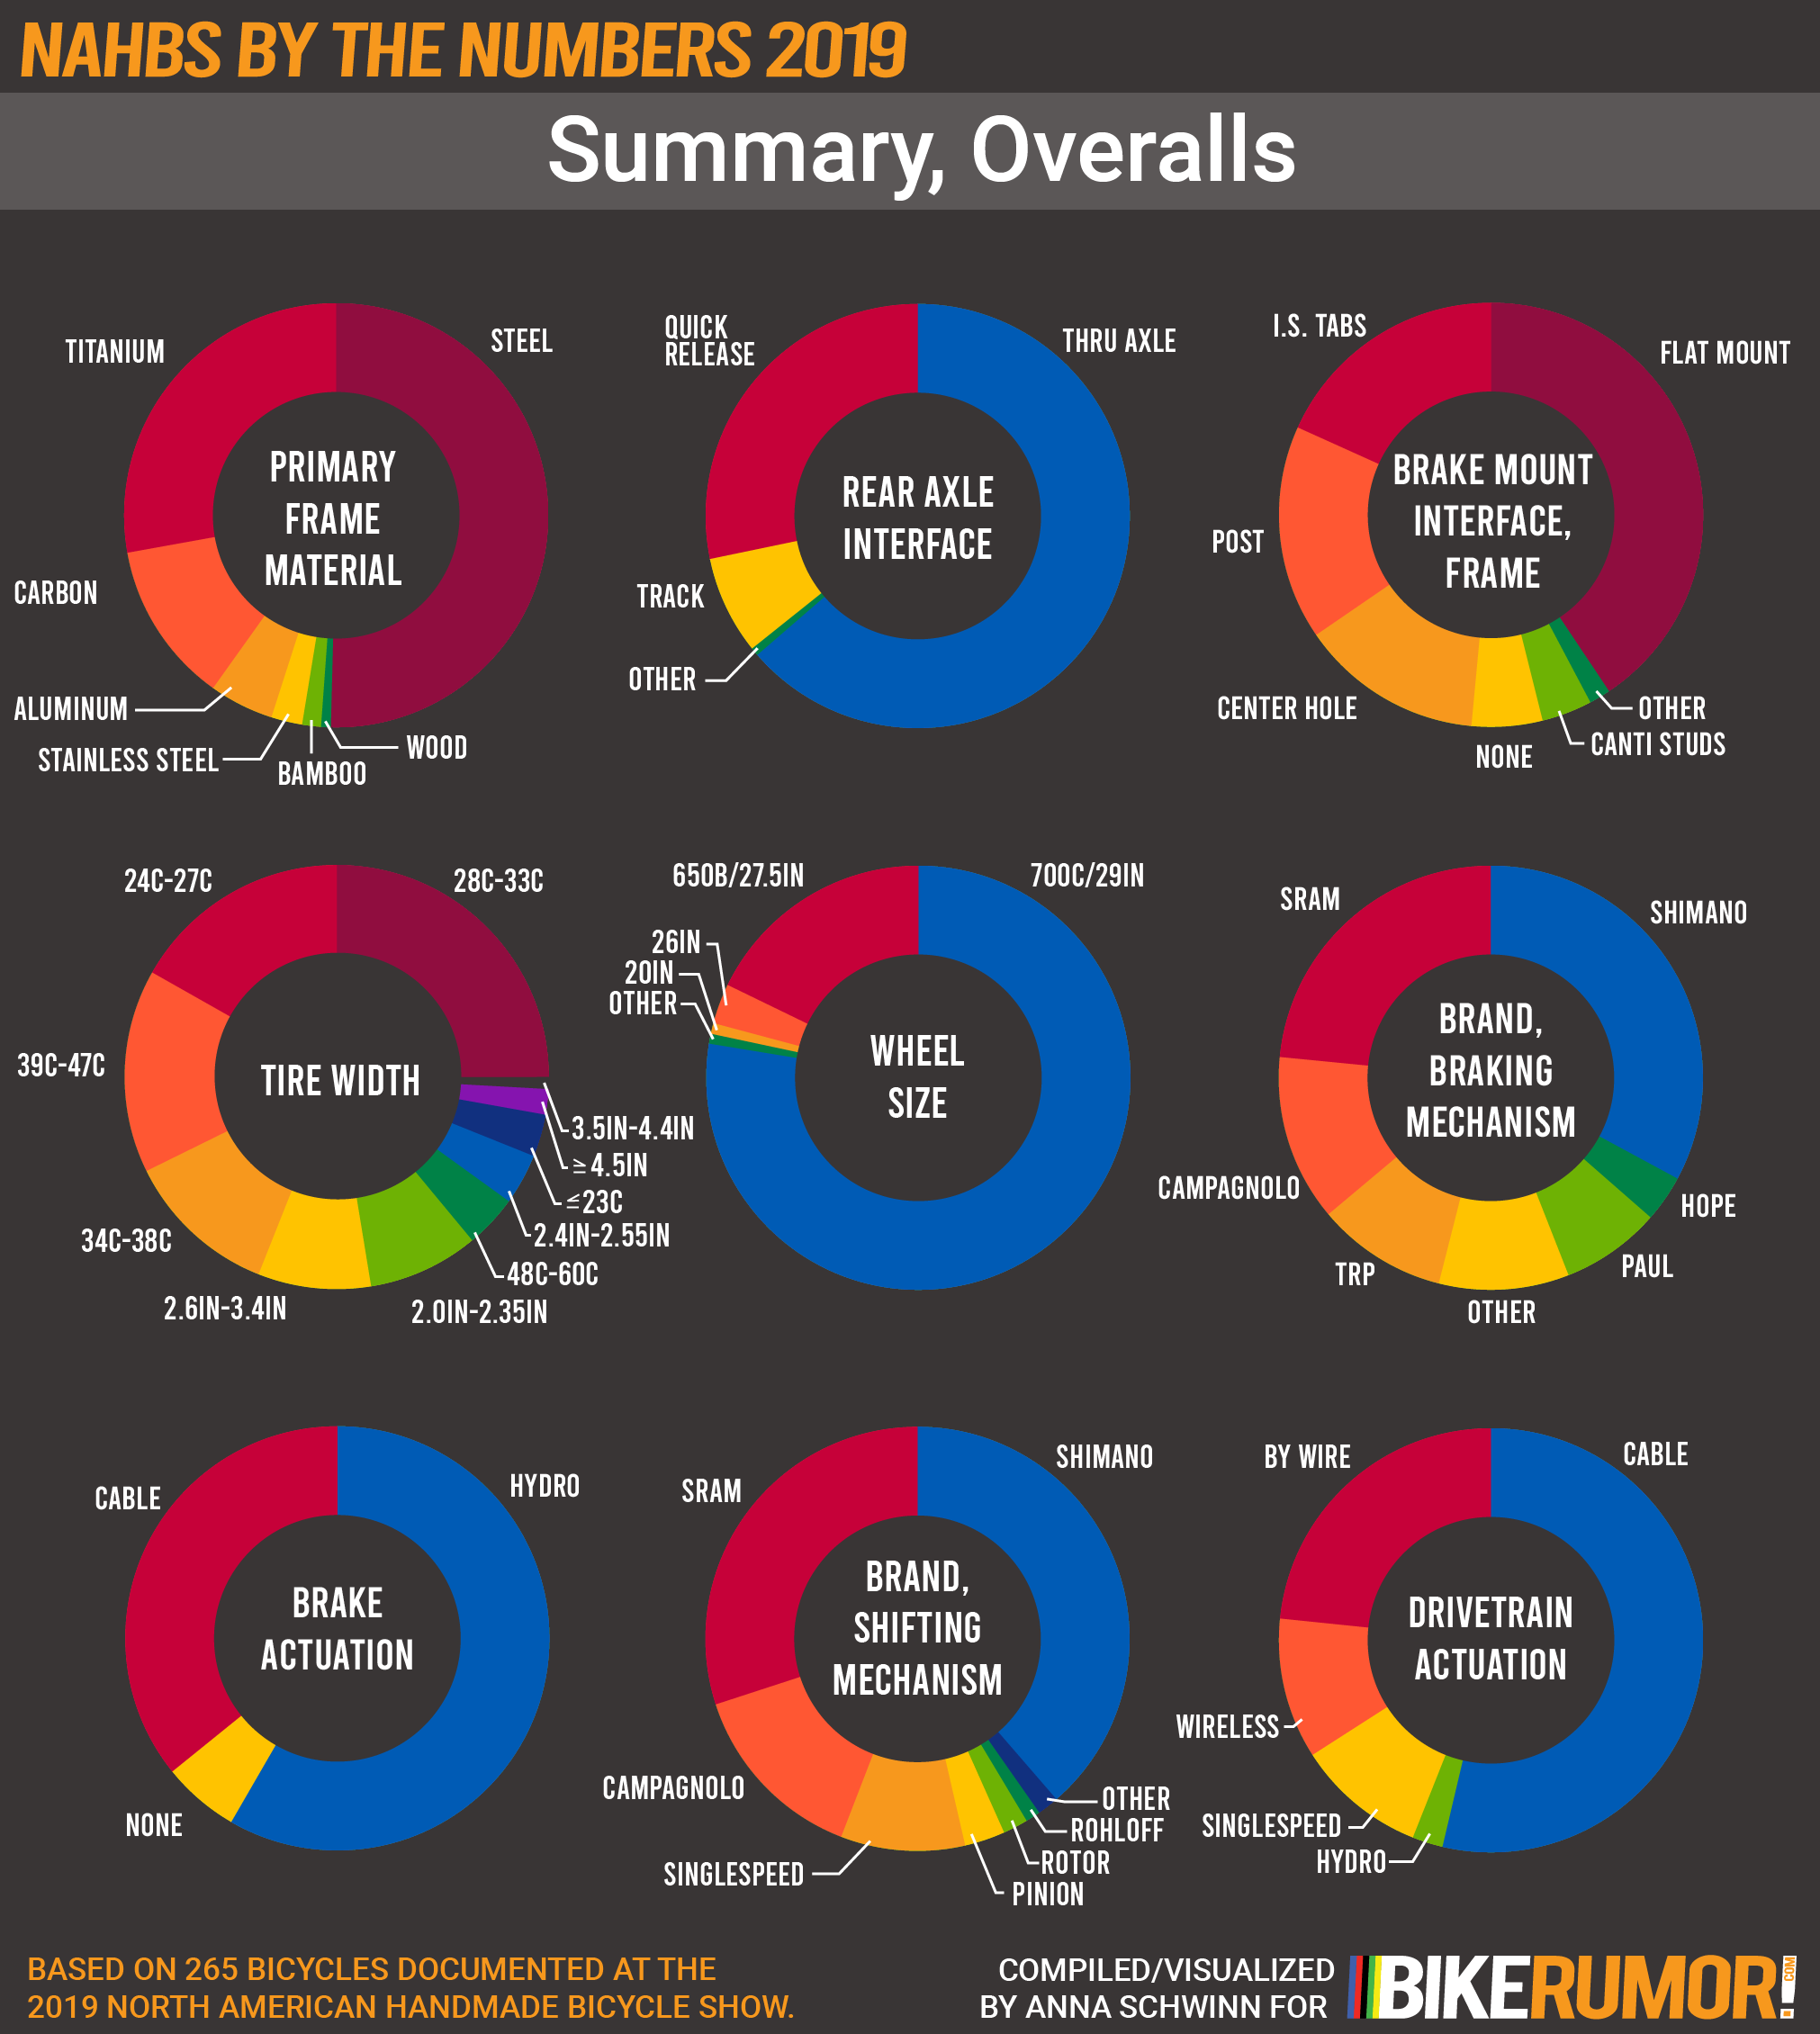 NAHBS by the Numbers 2019, Analysis by Discipline Category, Overall Summary